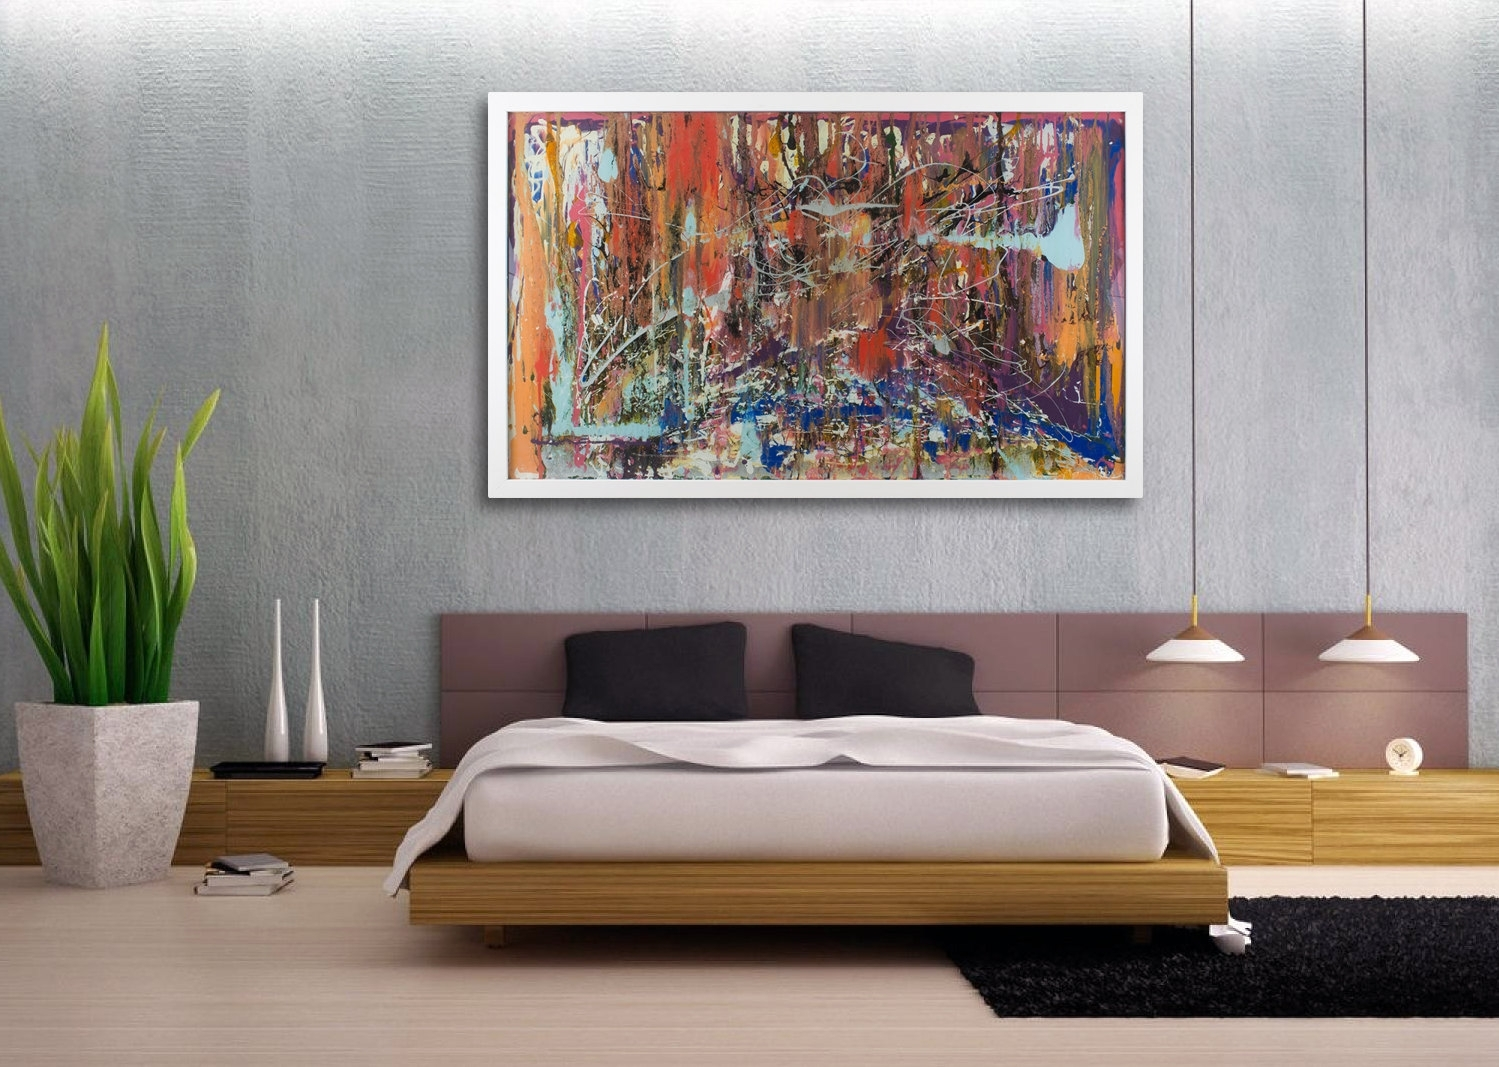 Expensive Large Canvas Wall Art Bedroom — Joanne Russo Homesjoanne Regarding Most Popular Embellished Canvas Wall Art (View 4 of 15)